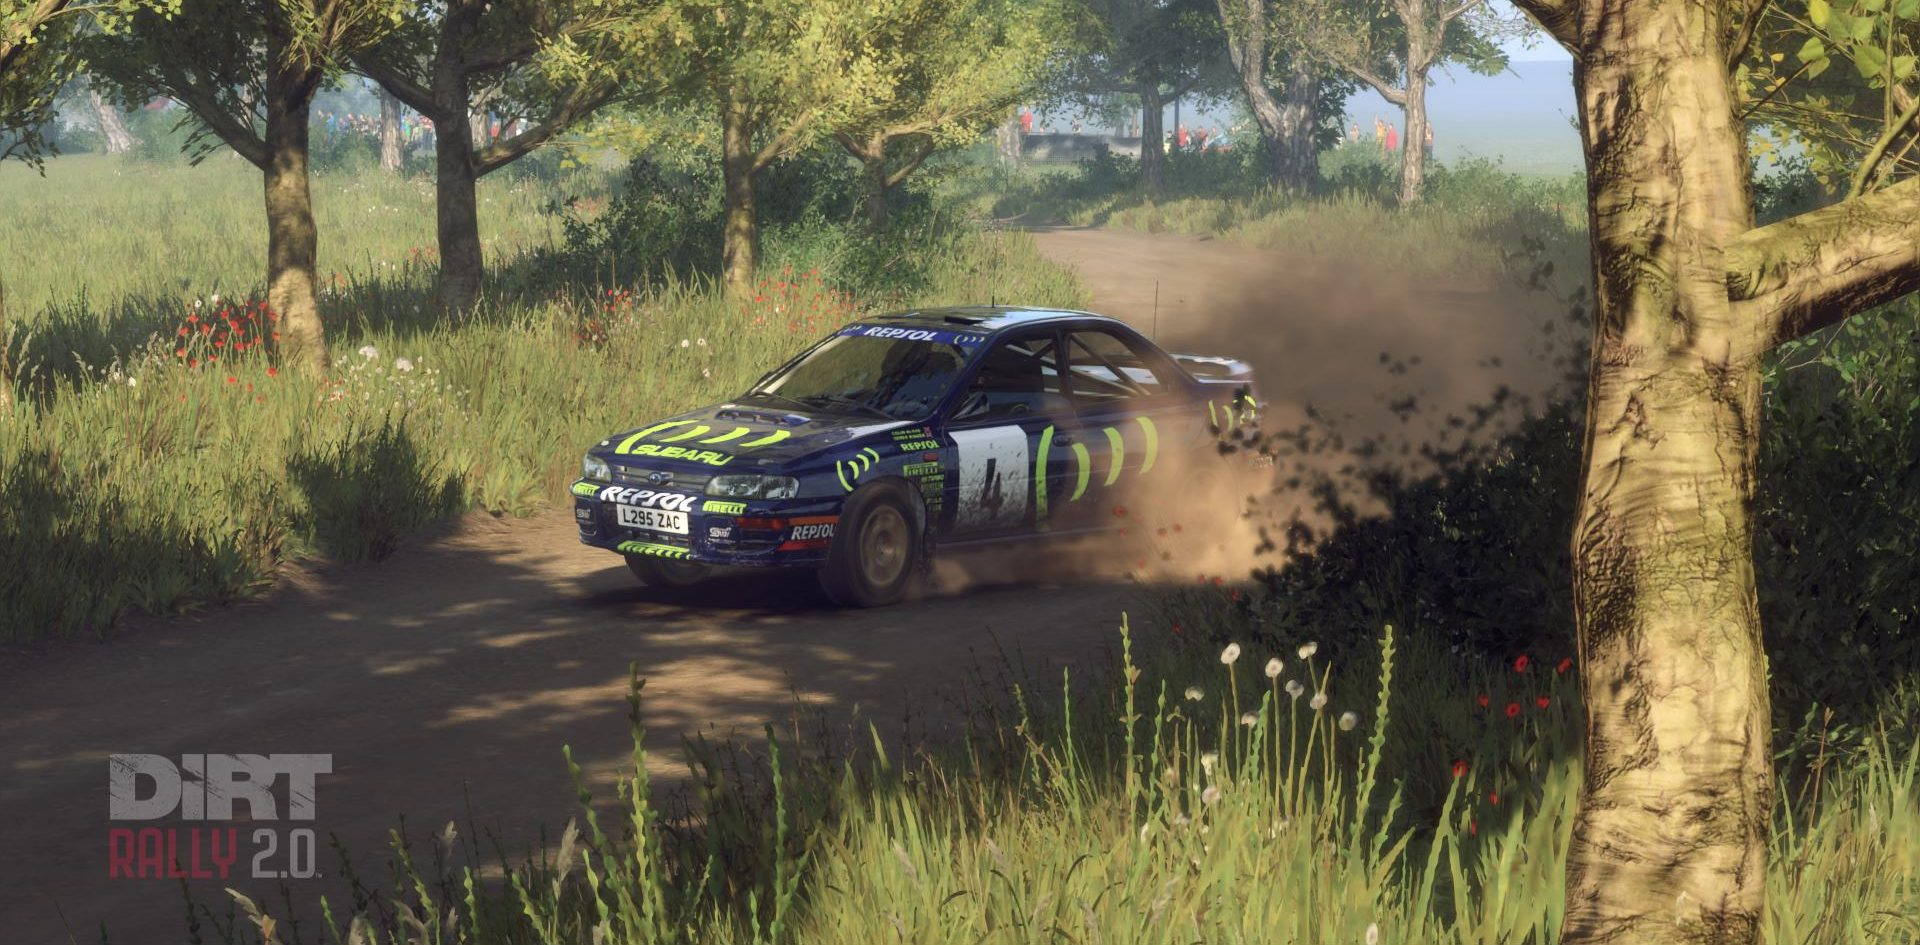 Weekly Championship DiRT Rally 2.0